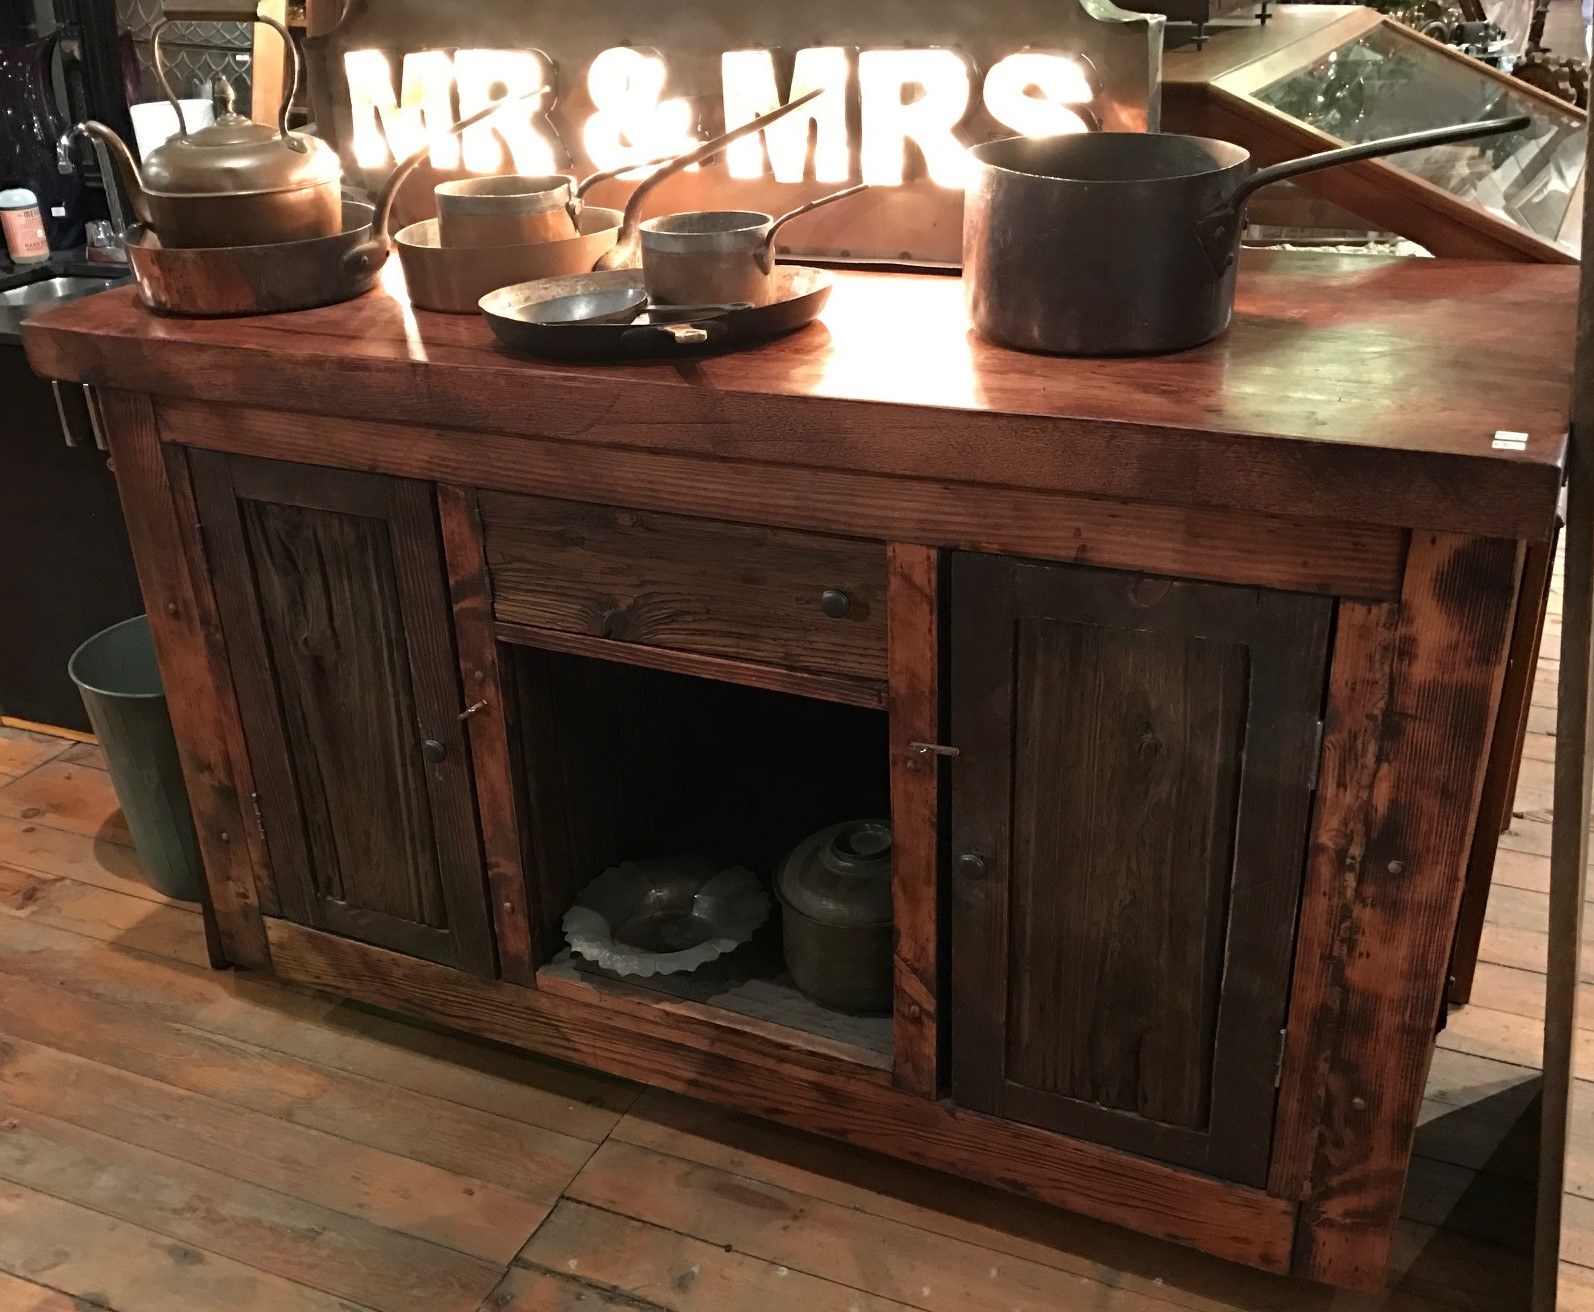 SOLD! Handcrafted Reclaimed Wood Cabinet